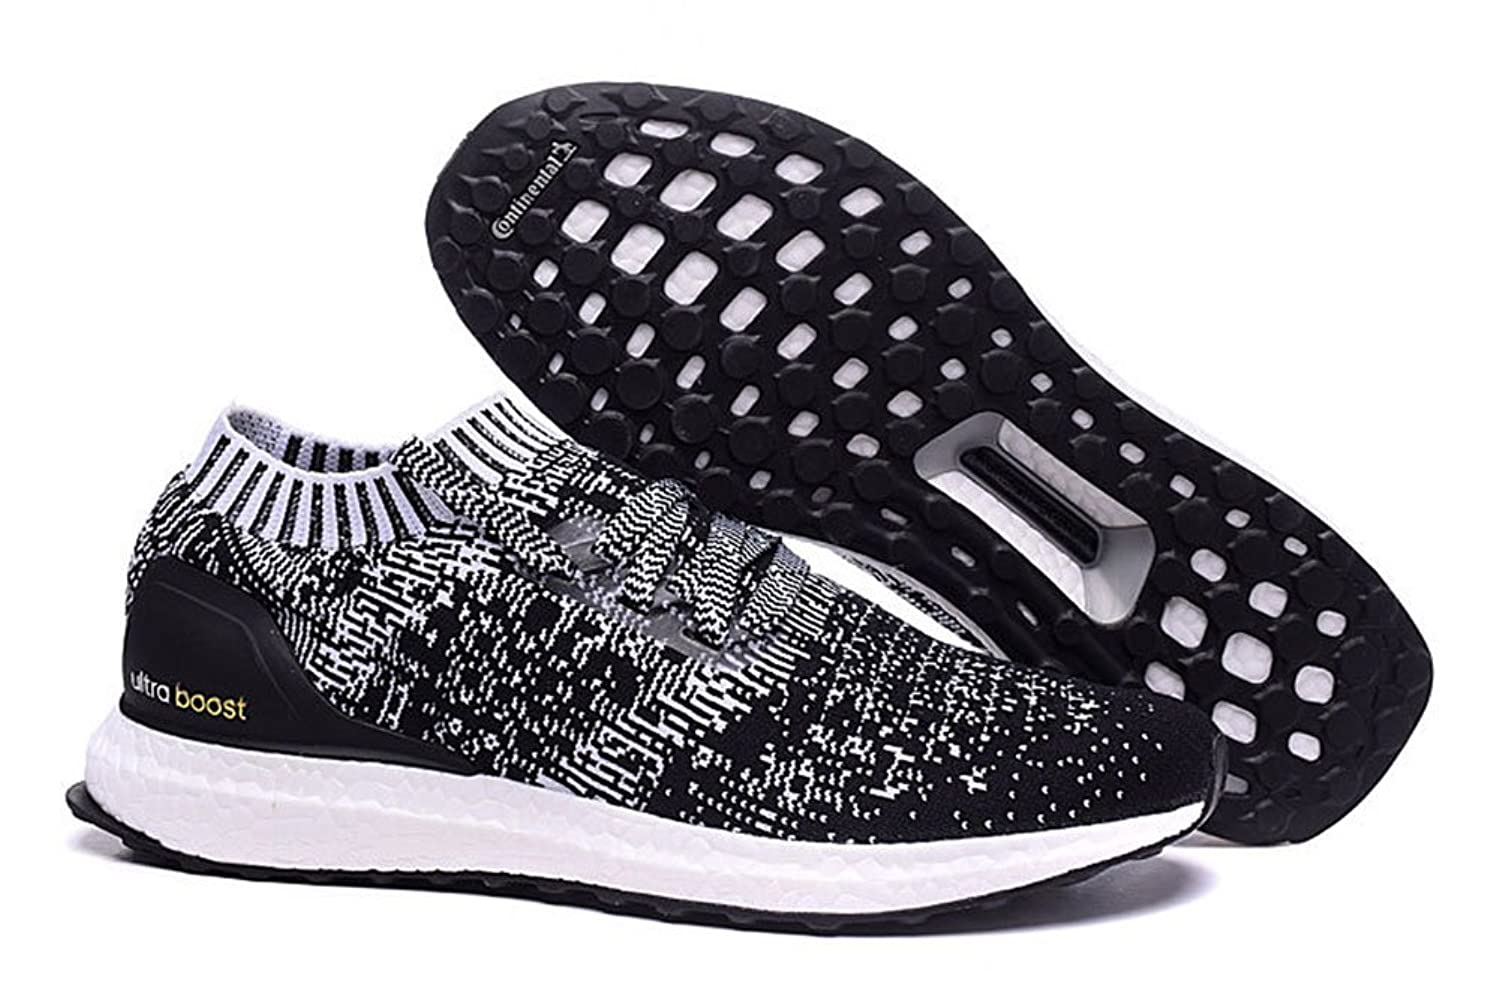 887c029aaa91f Amazon.com | Ultra Boost Uncaged Popcorn Men's Shoes 2016 New ...